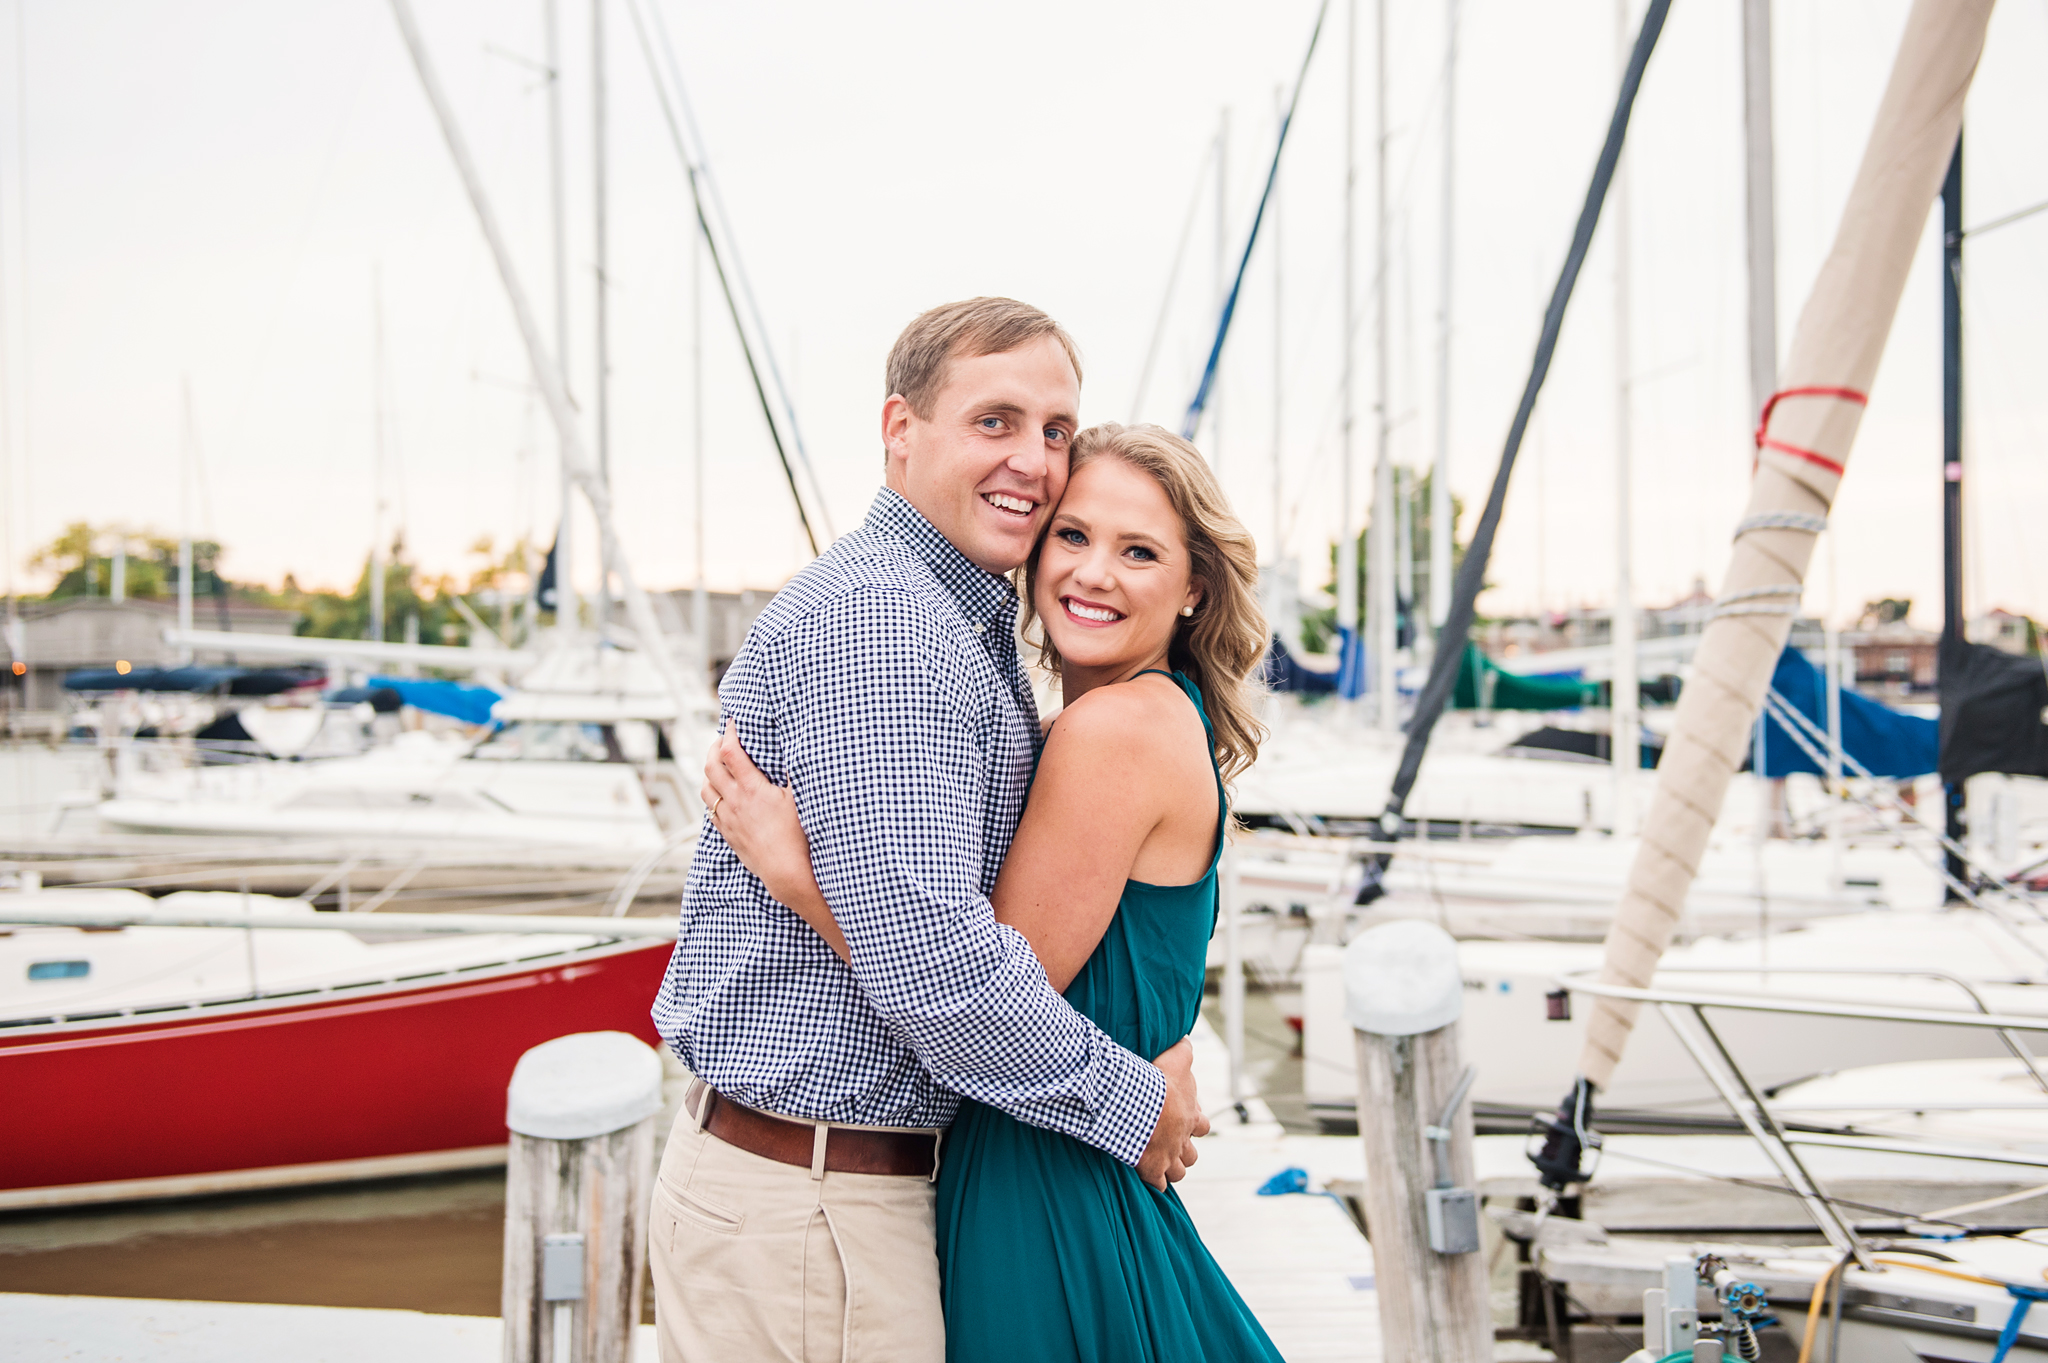 George_Eastman_House_Rochester_Yacht_Club_Rochester_Engagement_Session_JILL_STUDIO_Rochester_NY_Photographer_DSC_8175.jpg